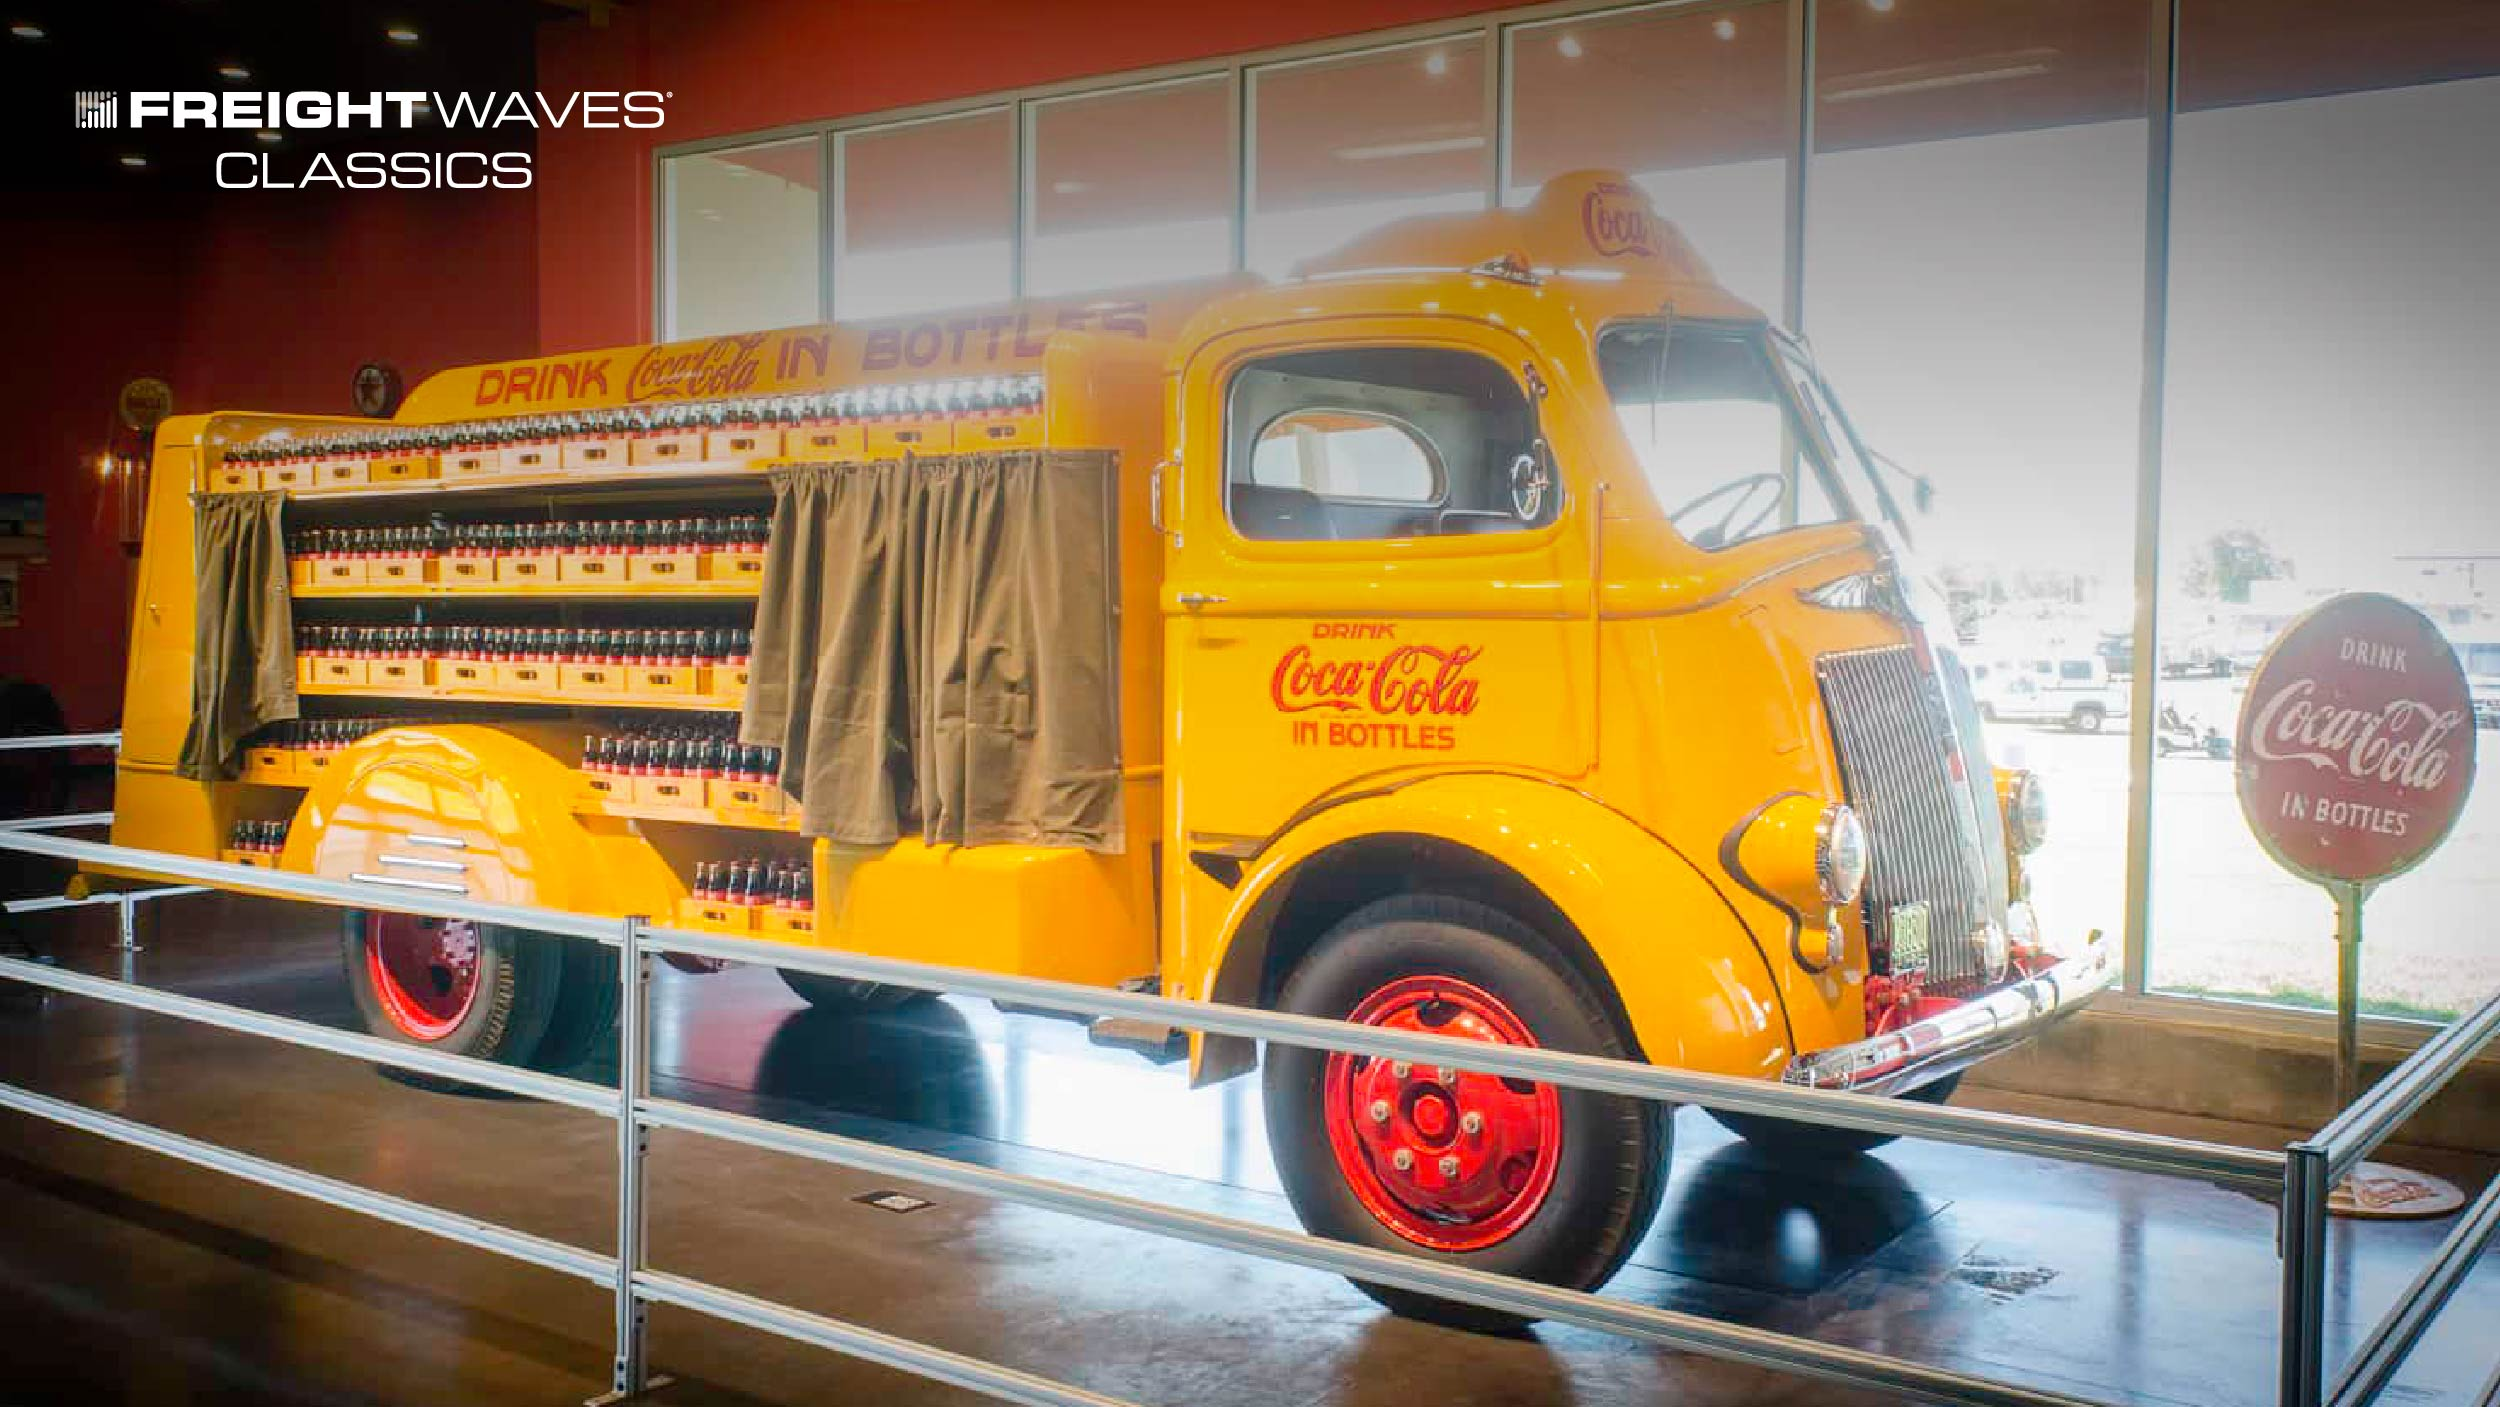 A Coca-Cola delivery truck manufactured by the White Motor Company. (Photo: Jim Allen/FreightWaves)